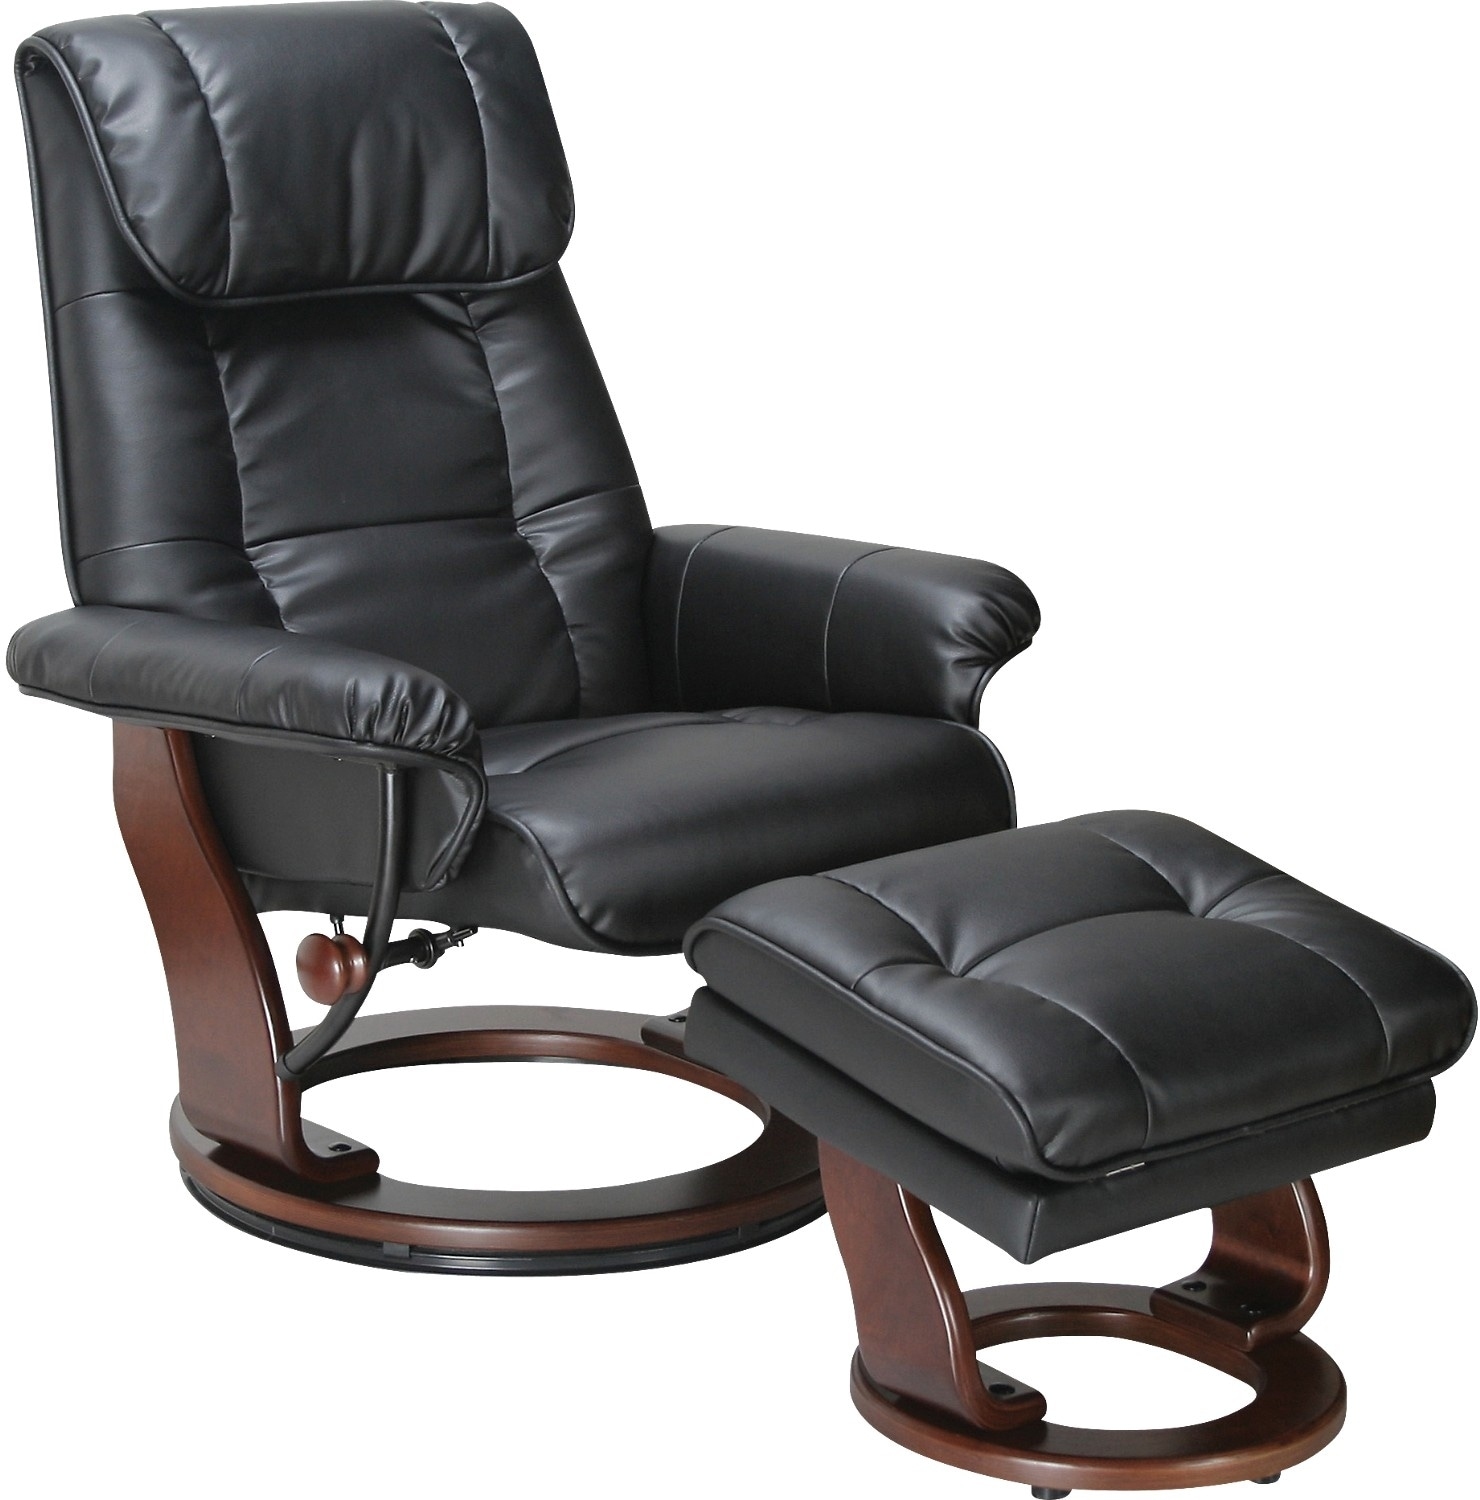 Living Room Furniture - Dixon Black Reclining Chair & Ottoman